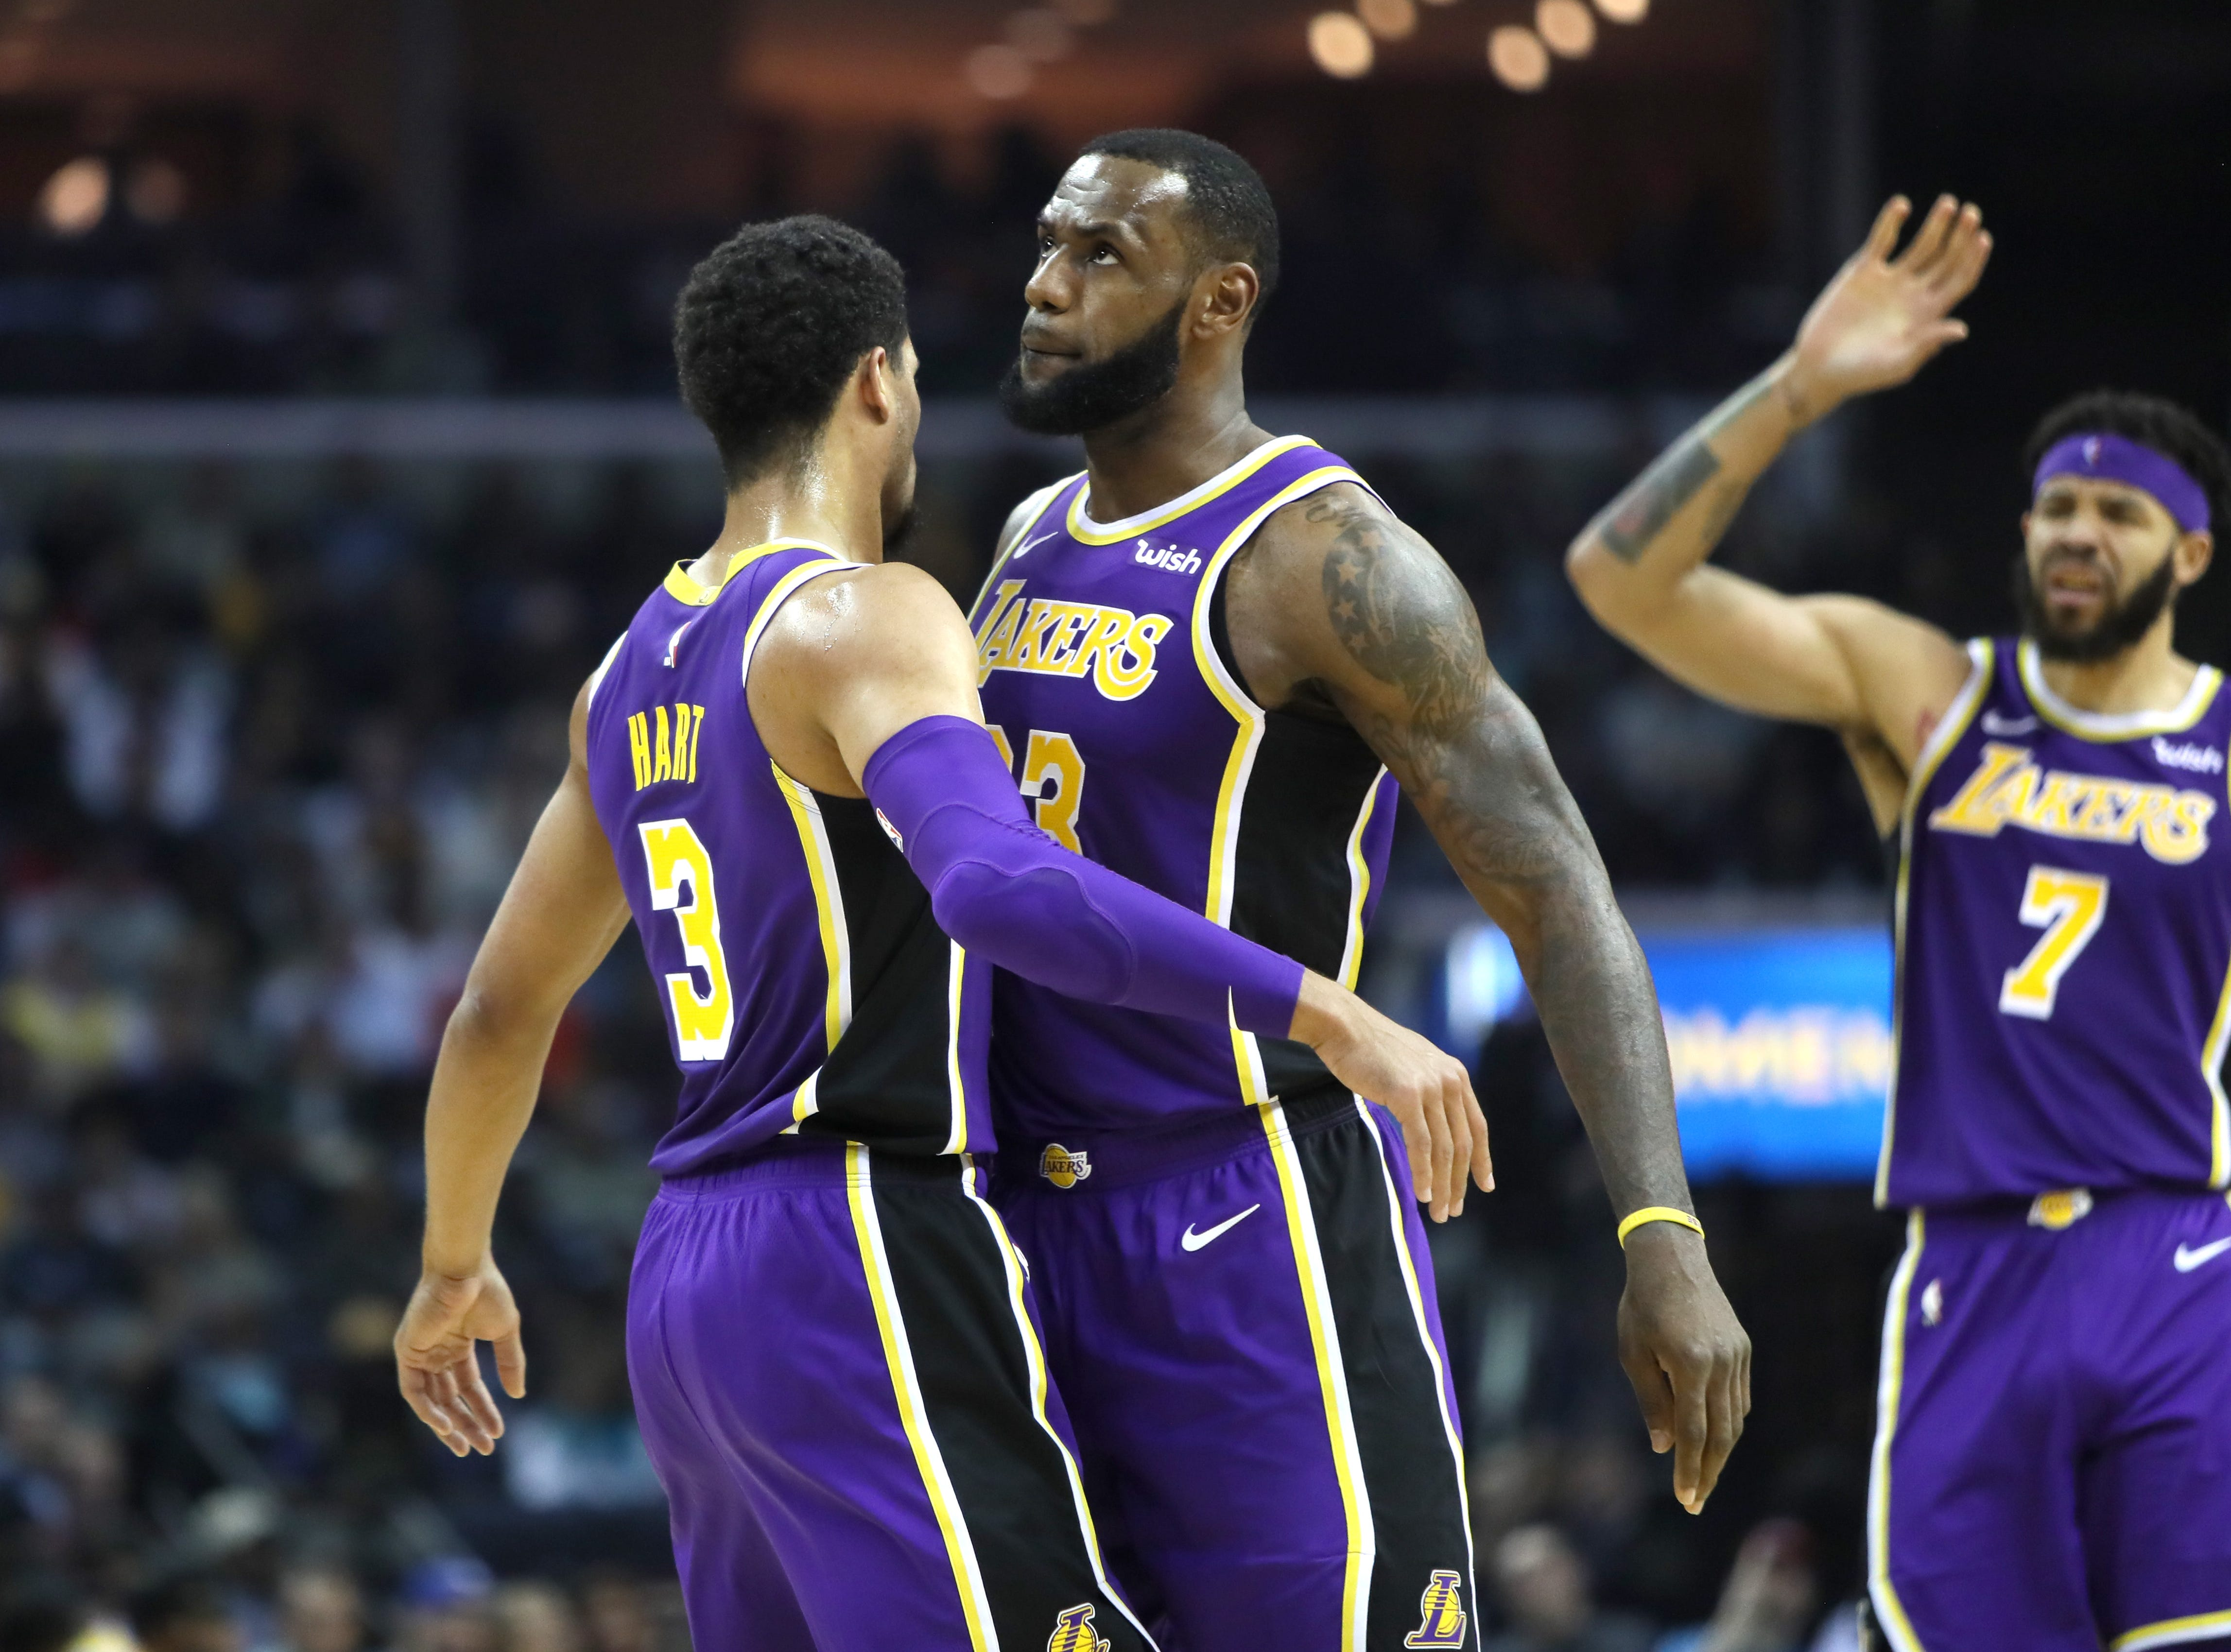 Los Angeles Lakers forward Lebron James, right, congratulates Josh Hart, left, on a made 3-pointer against the Memphis Grizzlies at the FedExForum on Saturday, Dec. 6, 2018.